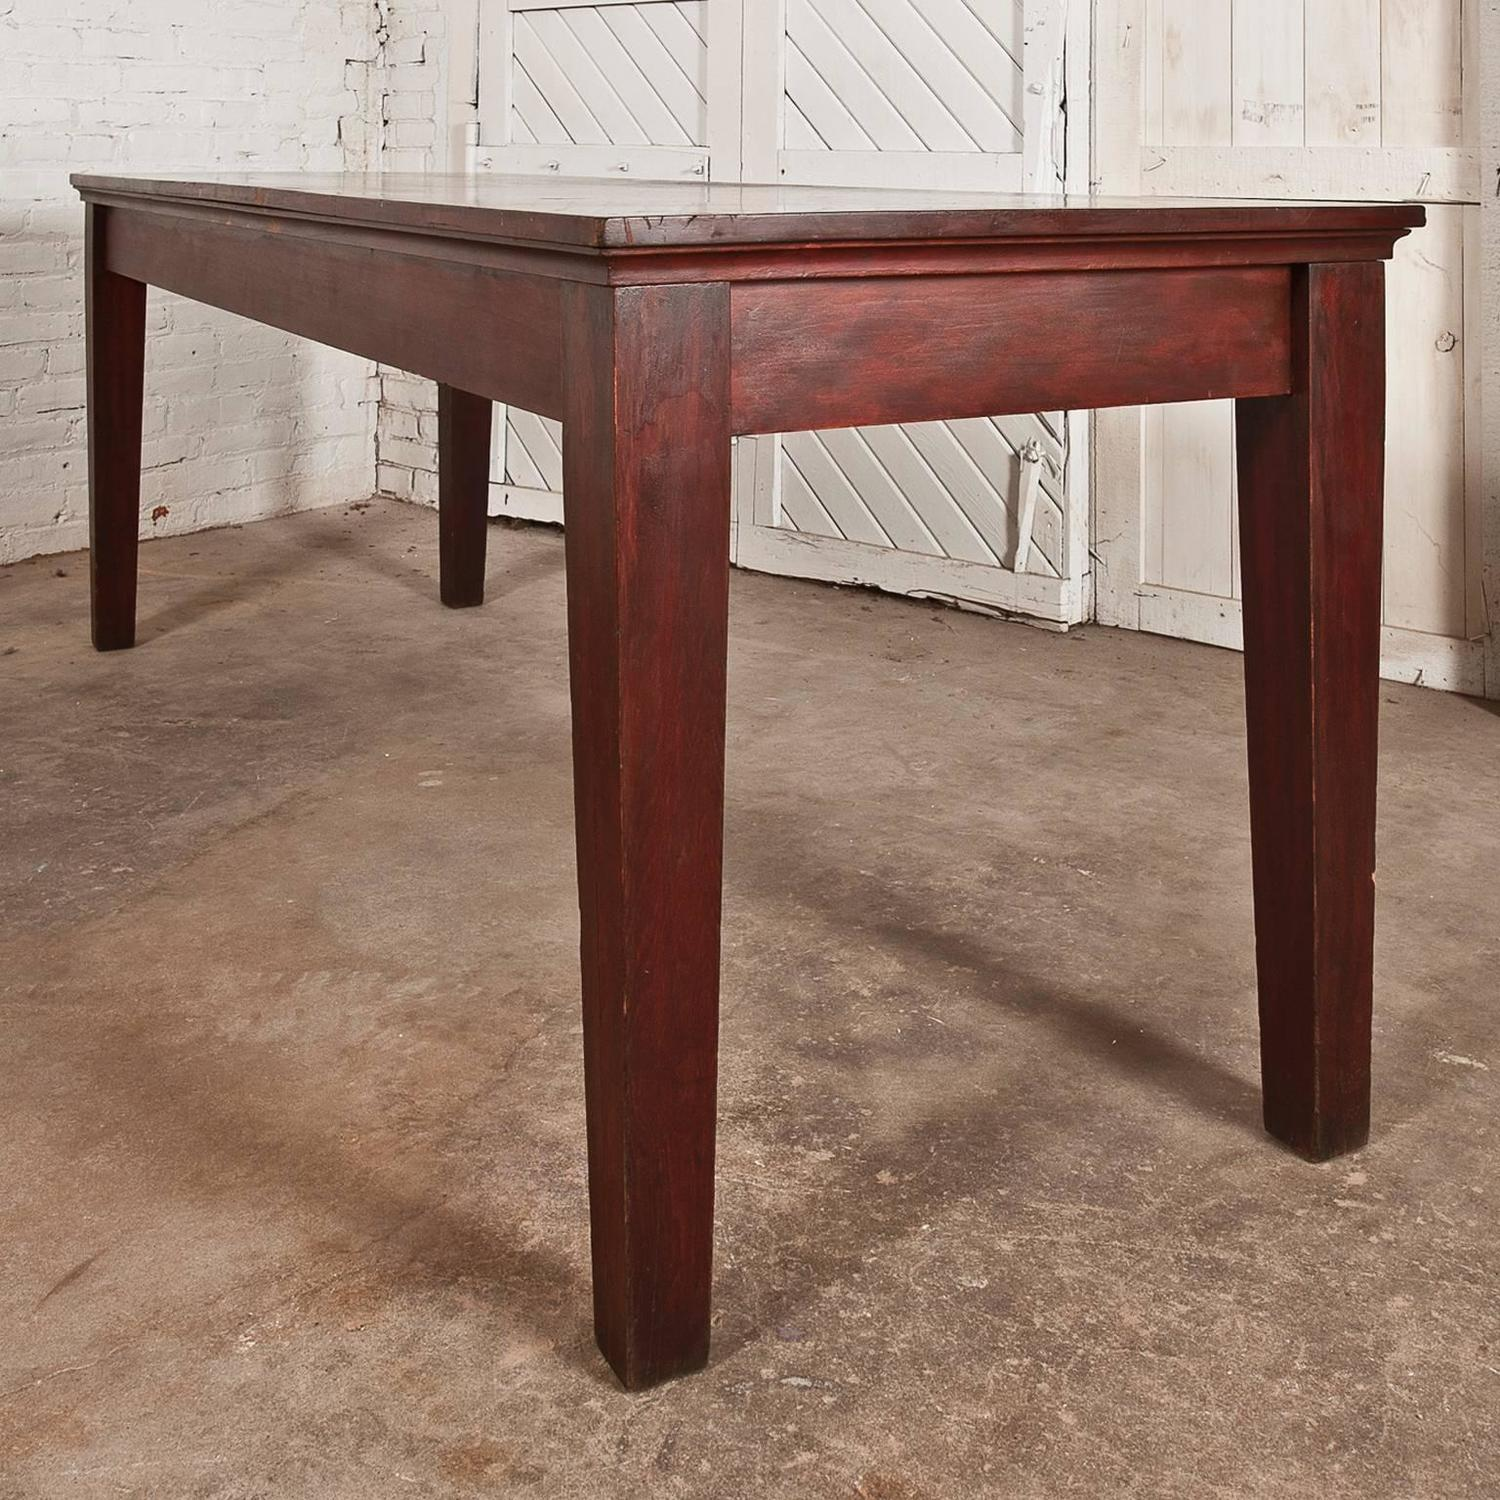 Antique Rustic Distressed Farmhouse Style Harvest Dining or Console Table For